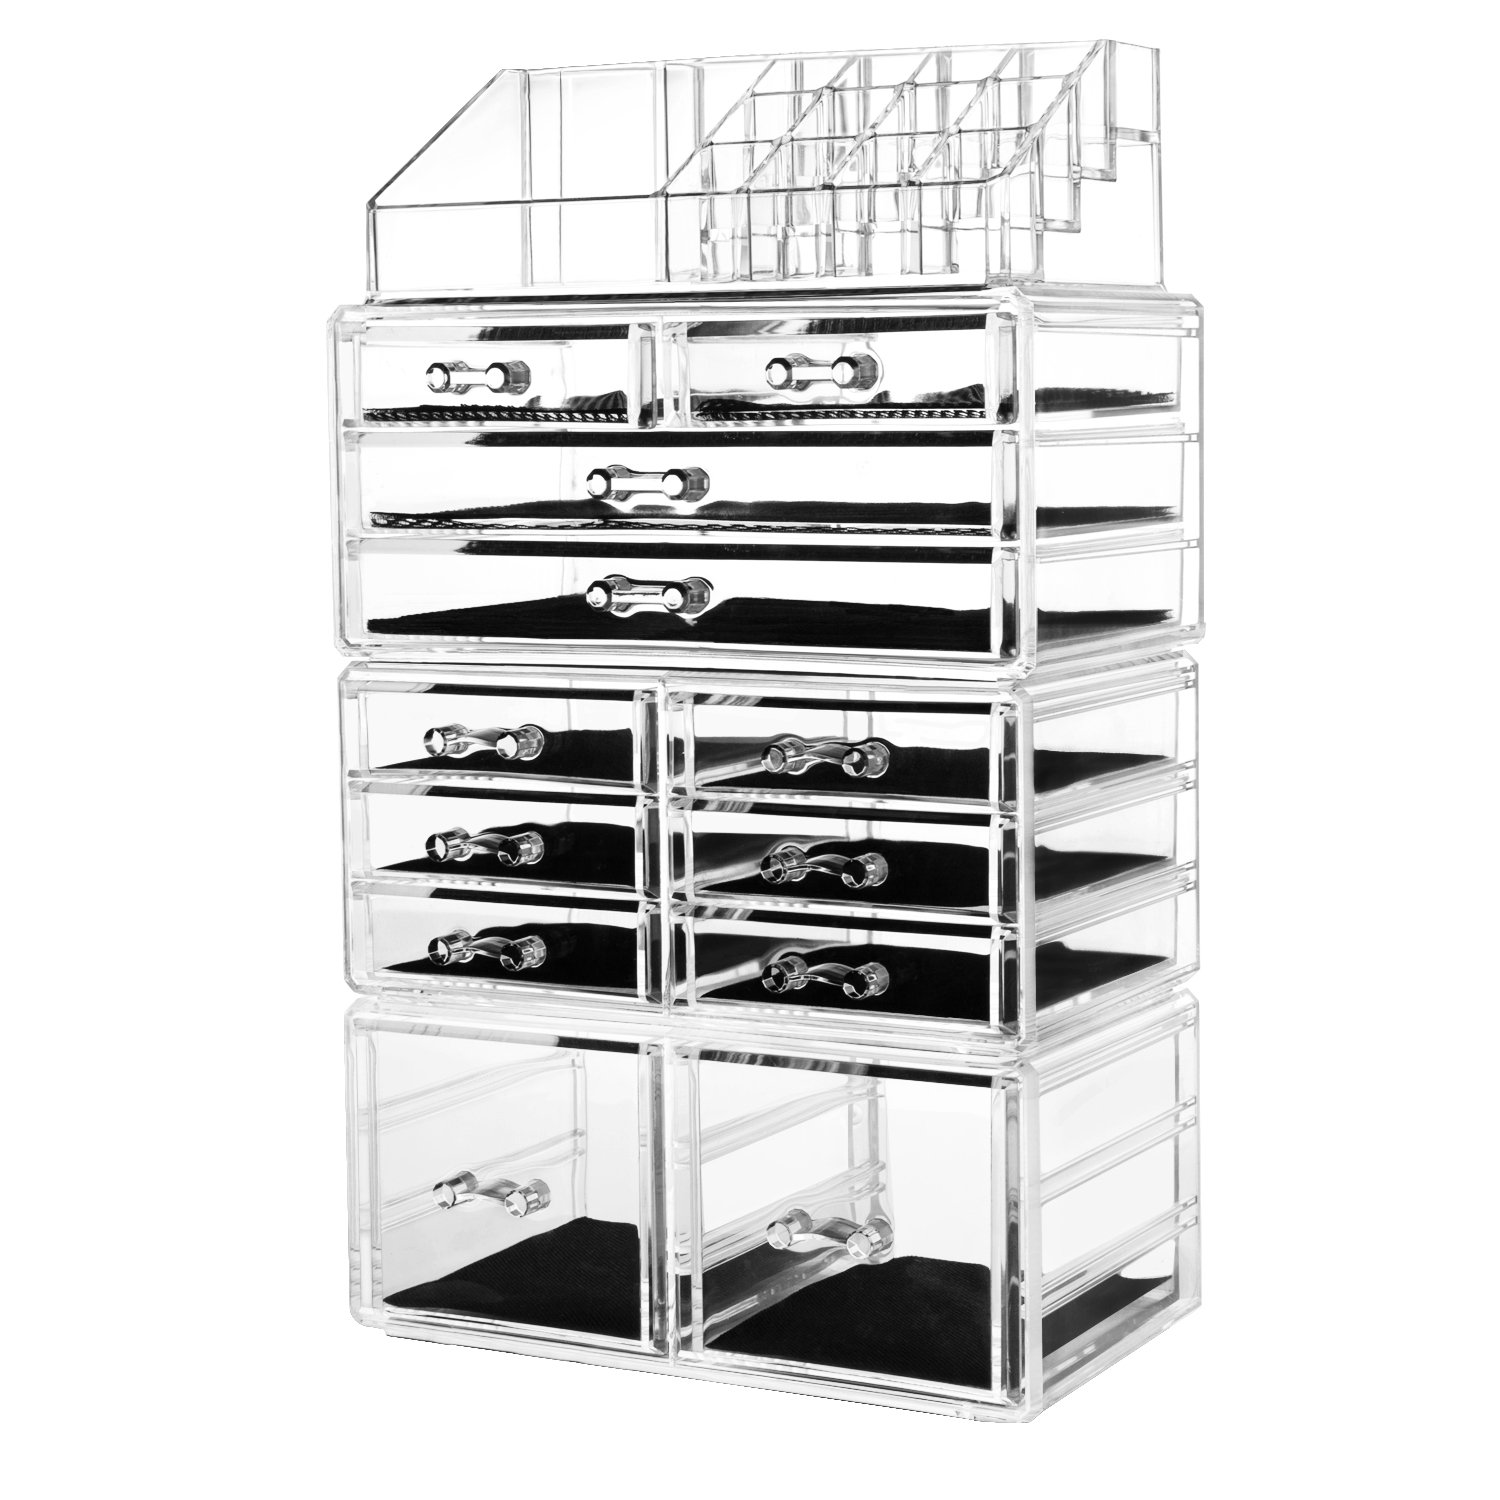 HBlife Makeup Organizer Acrylic Cosmetic Storage Drawers and Jewelry Display Box with 12 Drawers, 9.5'' x 5.4'' x 15.8'', 4 Piece by HBlife